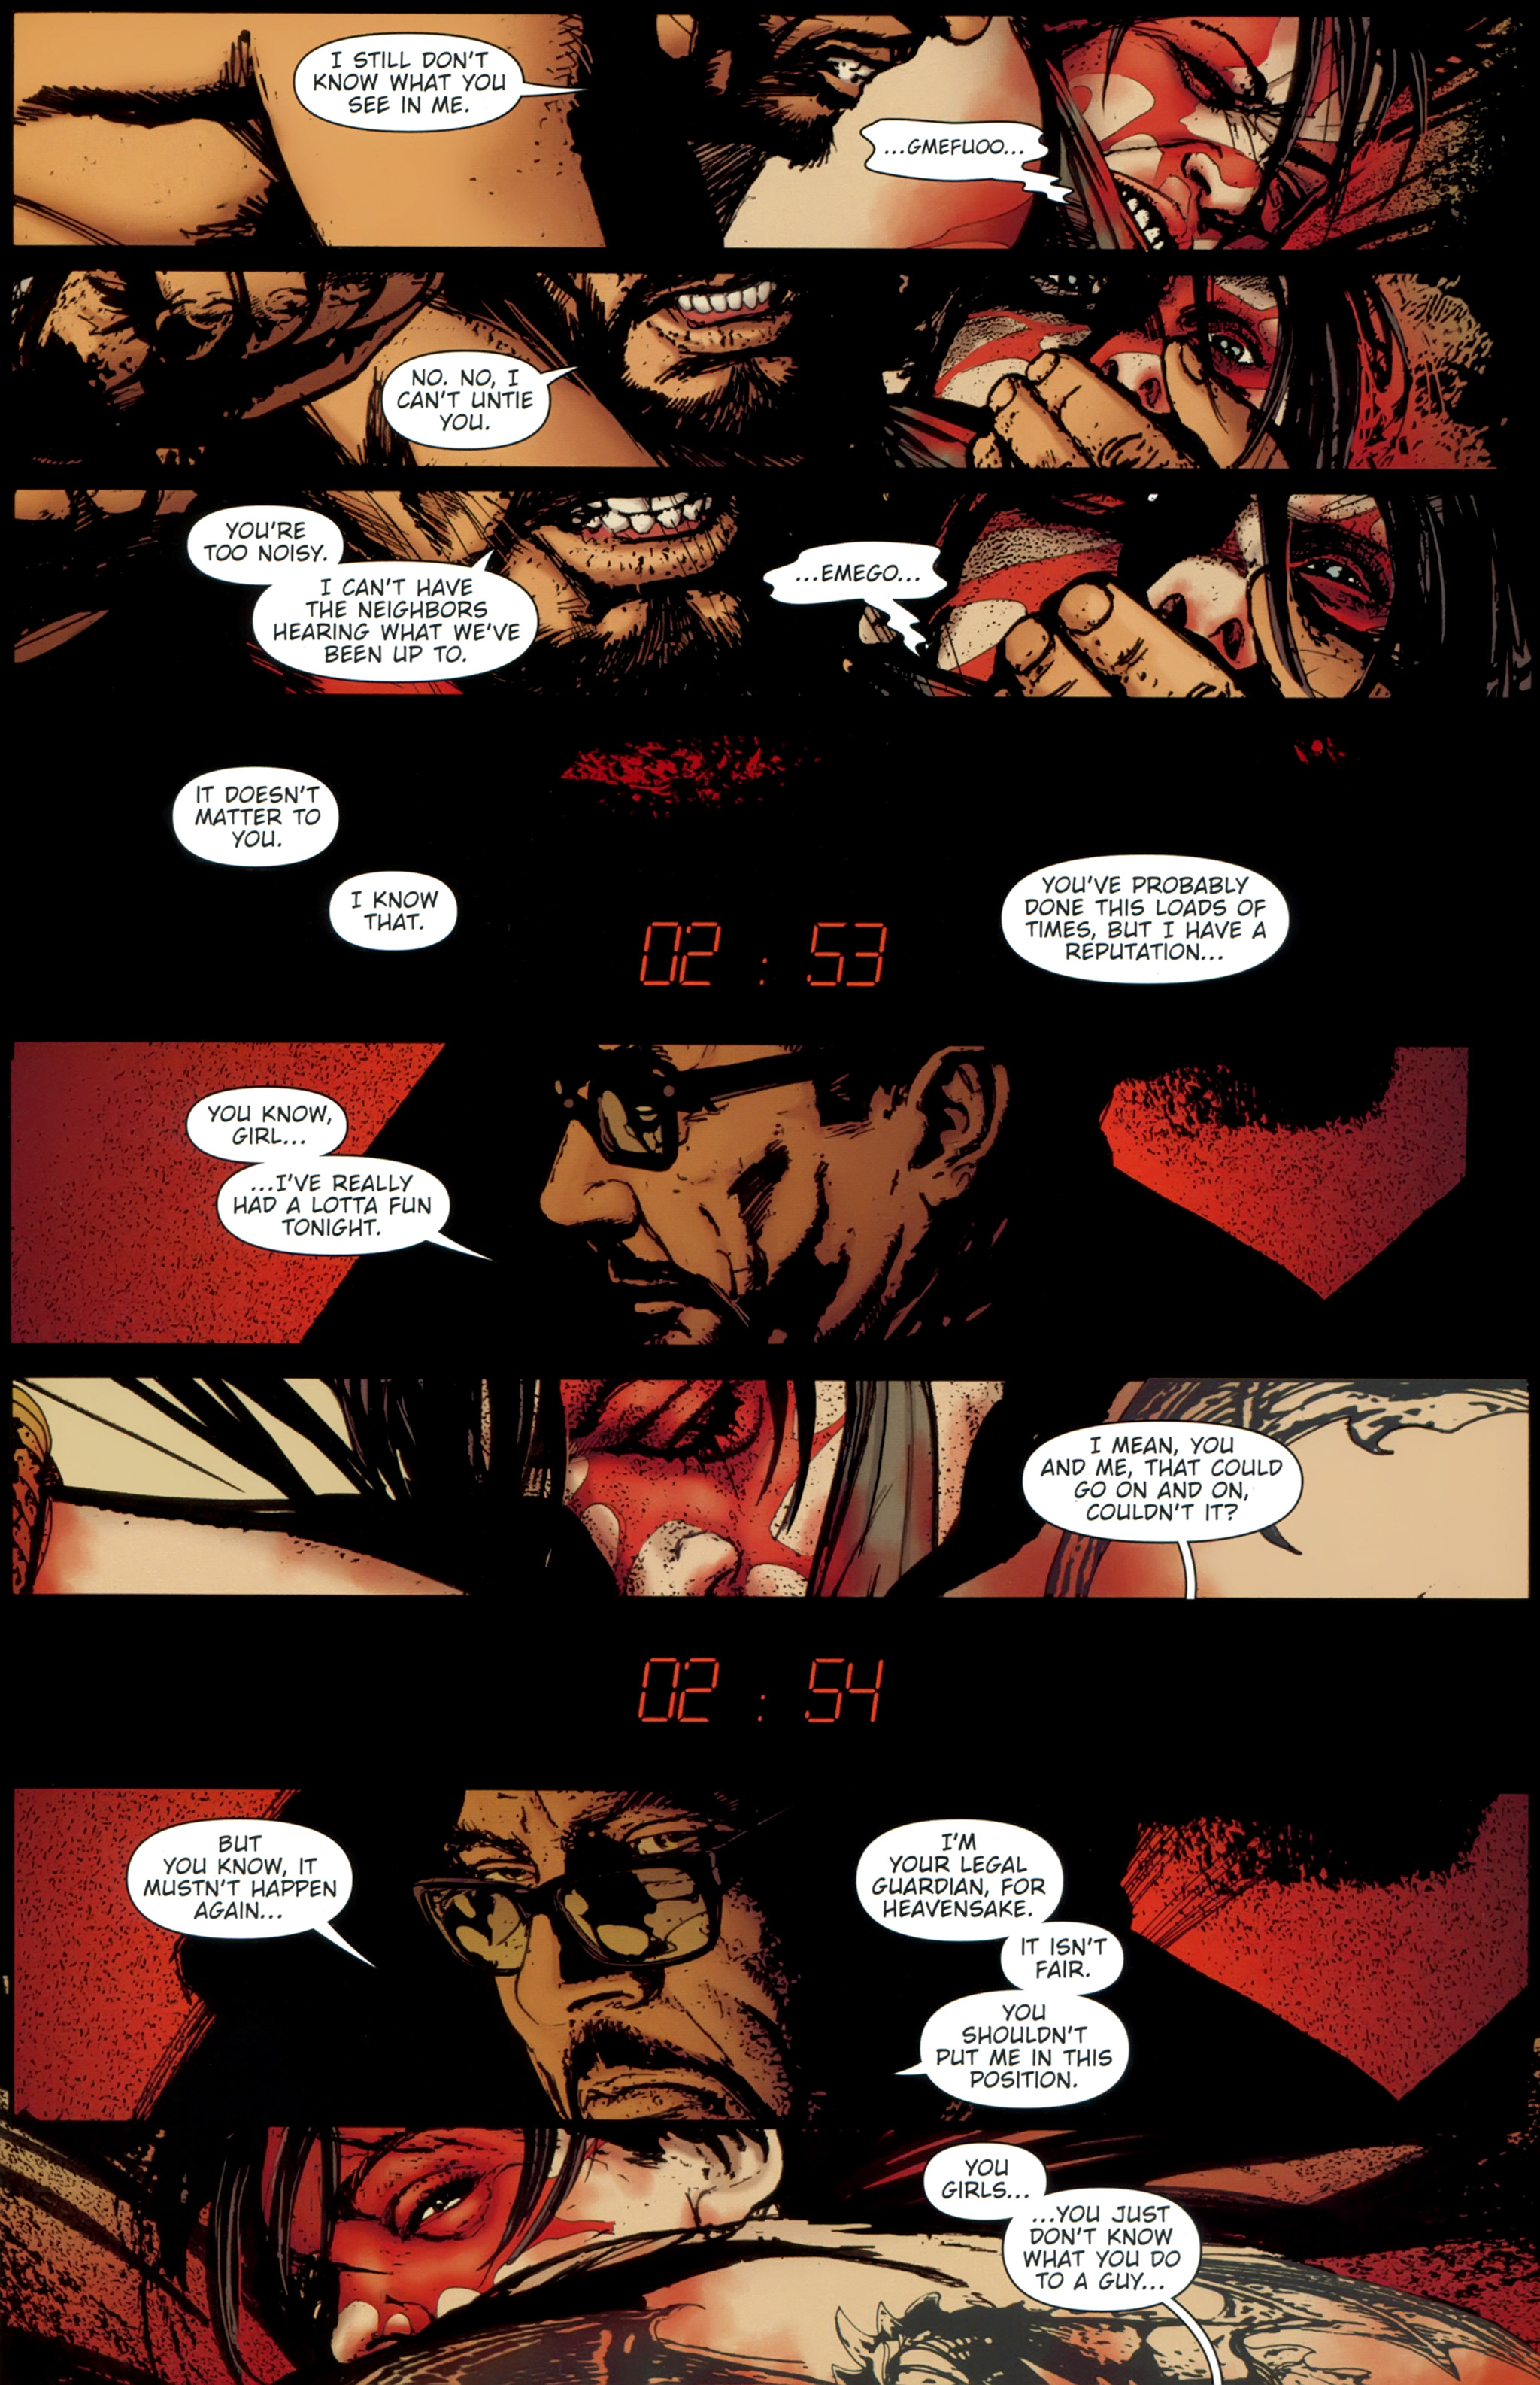 Read online The Girl With the Dragon Tattoo comic -  Issue # TPB 1 - 122